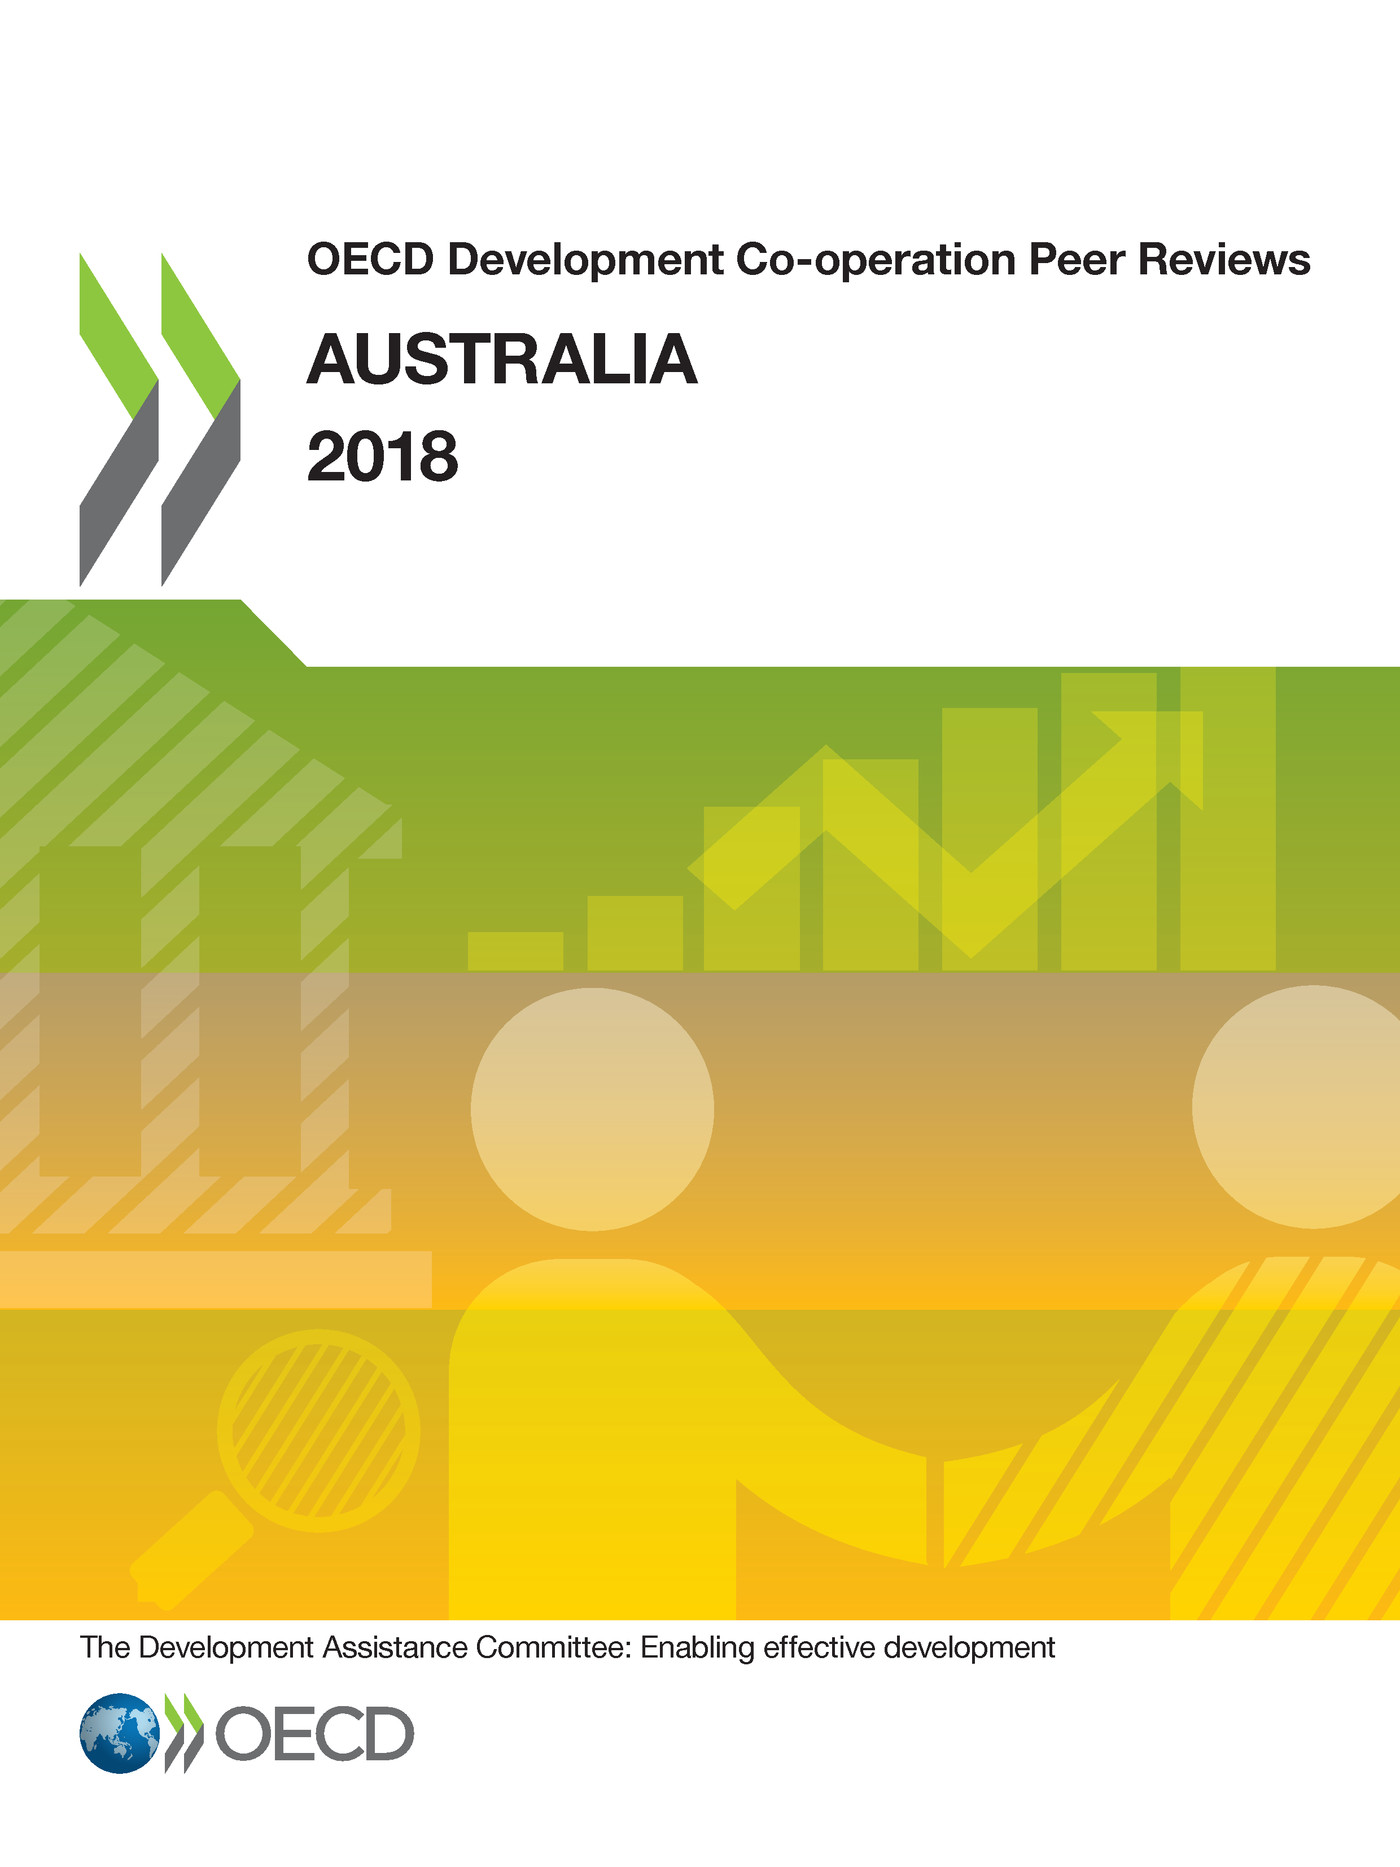 OECD Development Co-operation Peer Reviews: Australia 2018 De  Collectif - OCDE / OECD